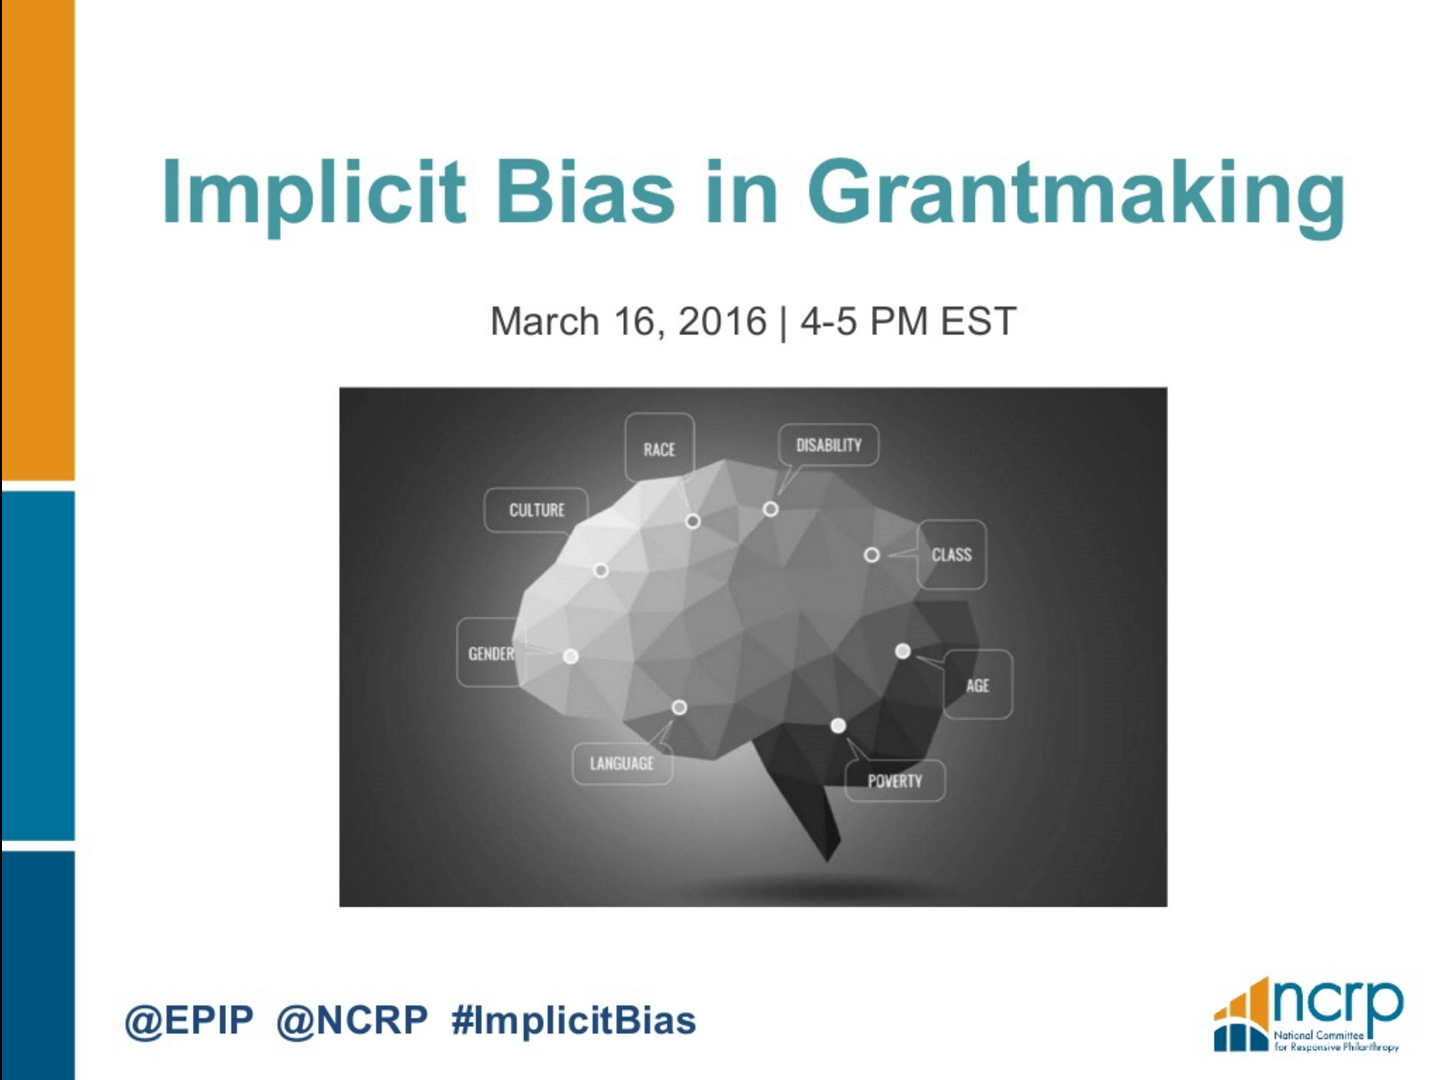 Implicit Bias in Grantmaking, EPIP Webinar